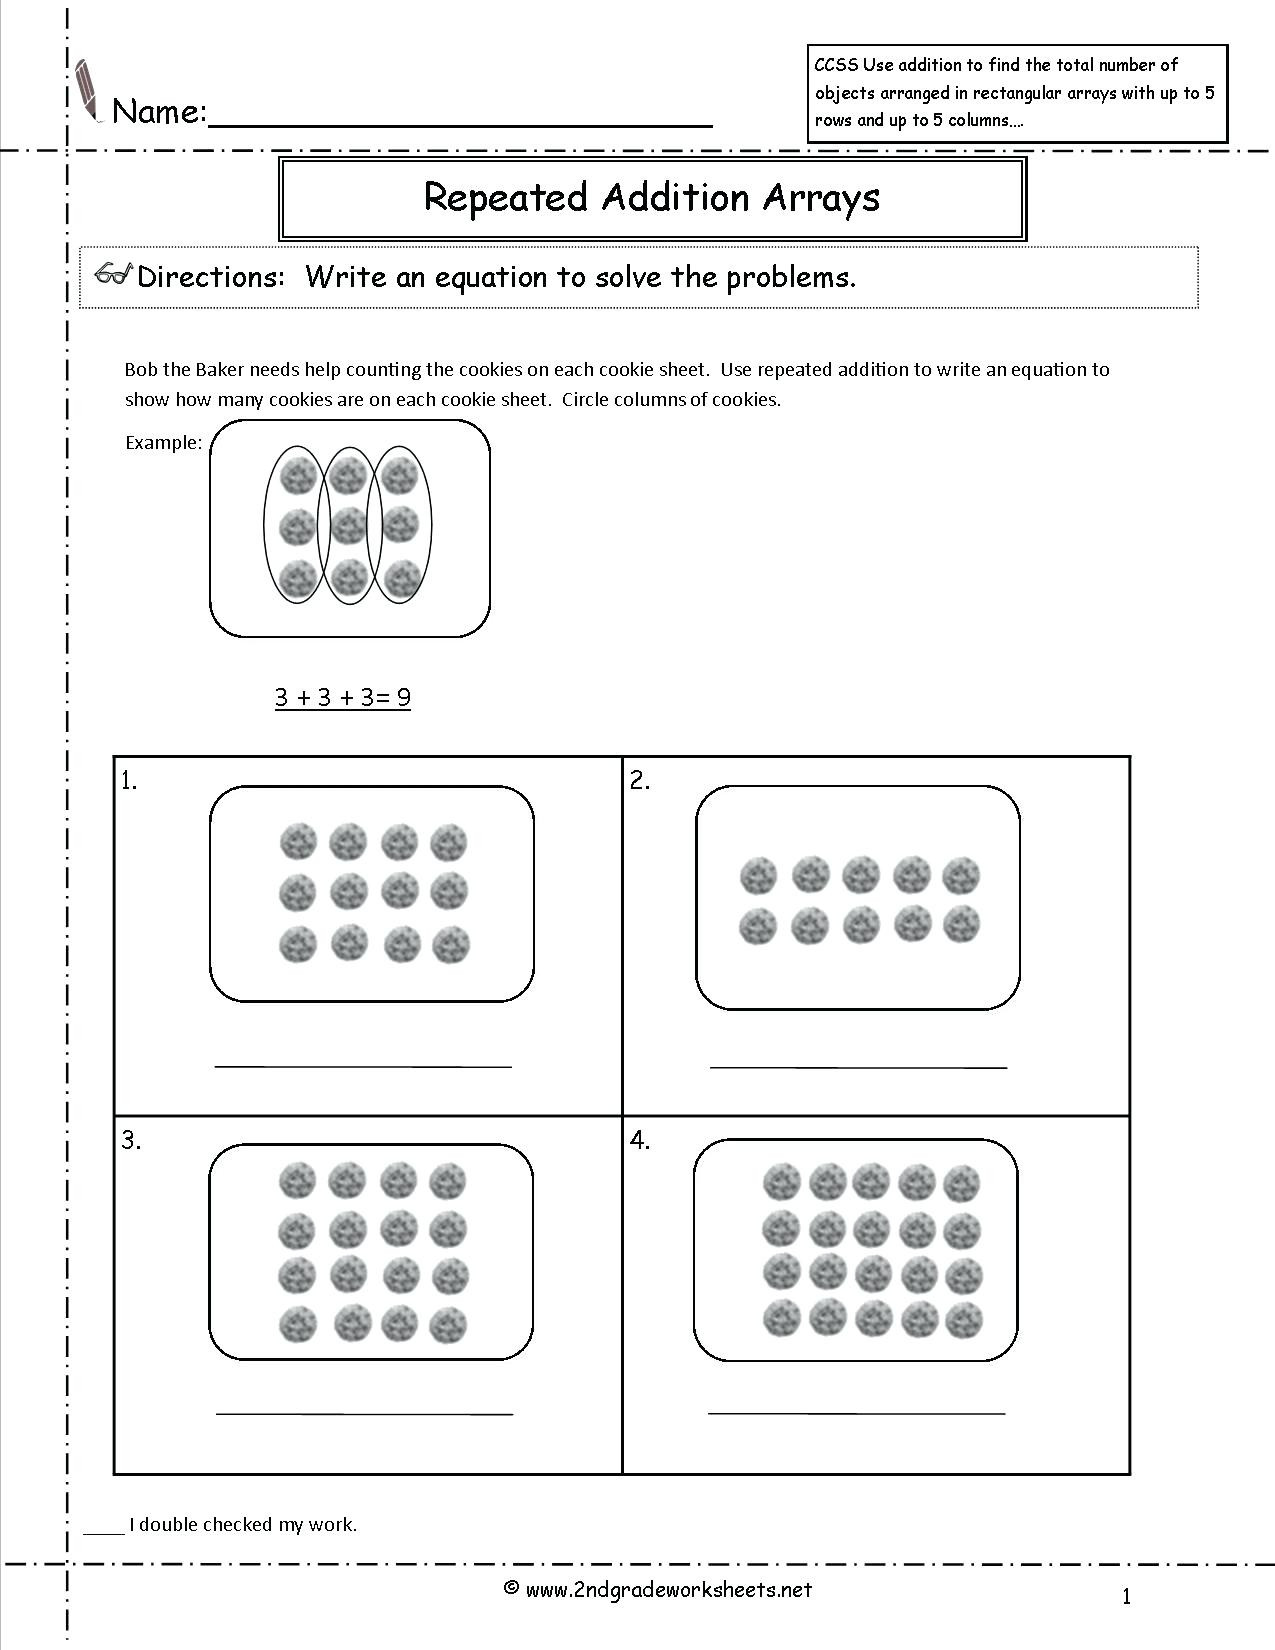 hight resolution of 4 Free Math Worksheets Second Grade 2 Addition Add 4 2 Digit Numbers In  Columns - apocalomegaproductions.com